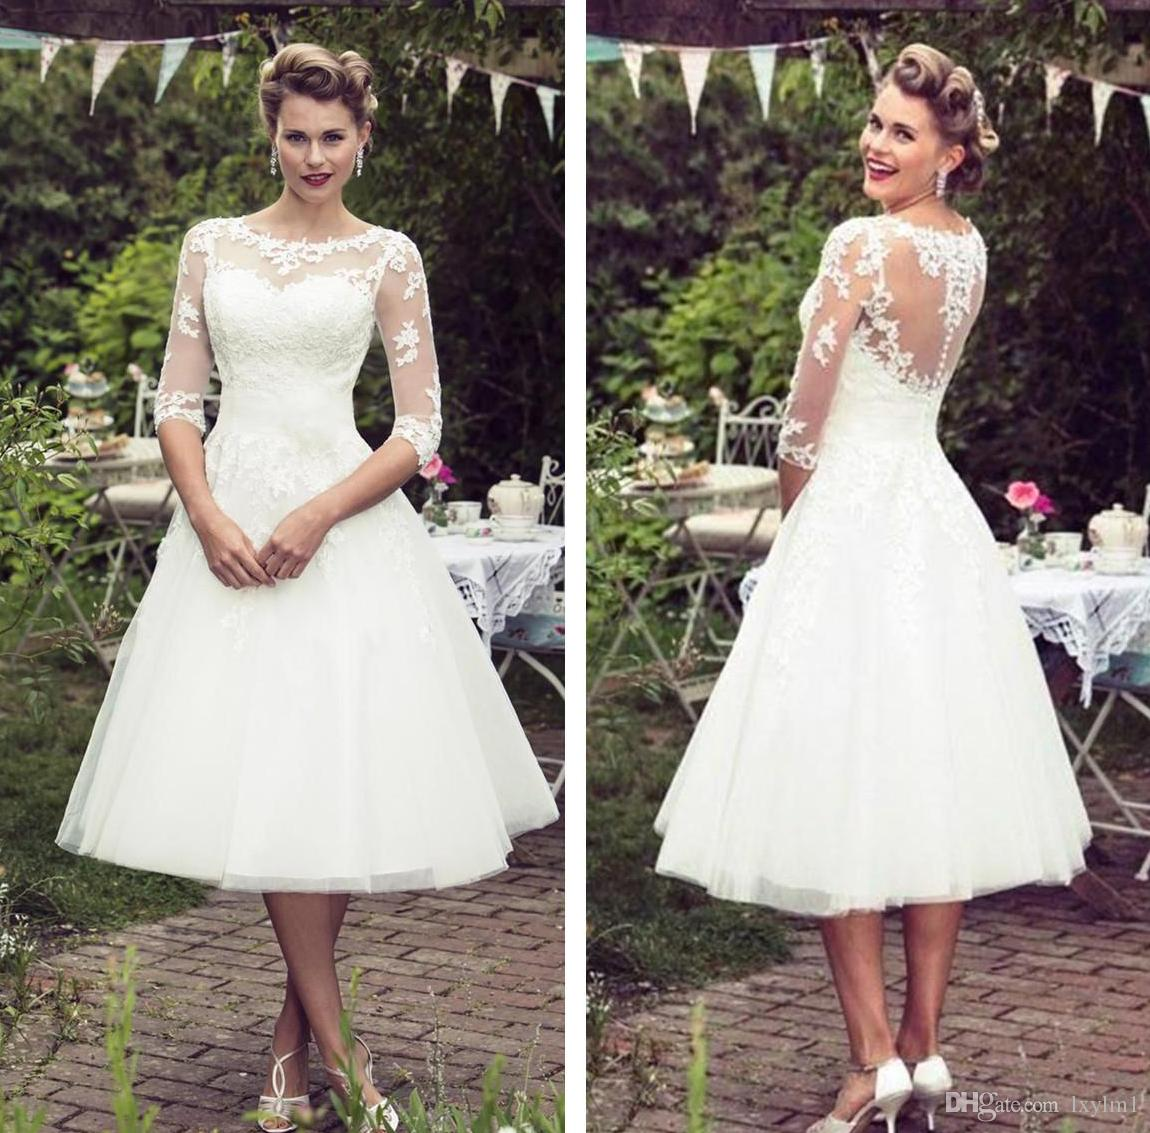 Vintage Wedding Dresses Perth: 25+ Best Of Collins Tuohy Beach